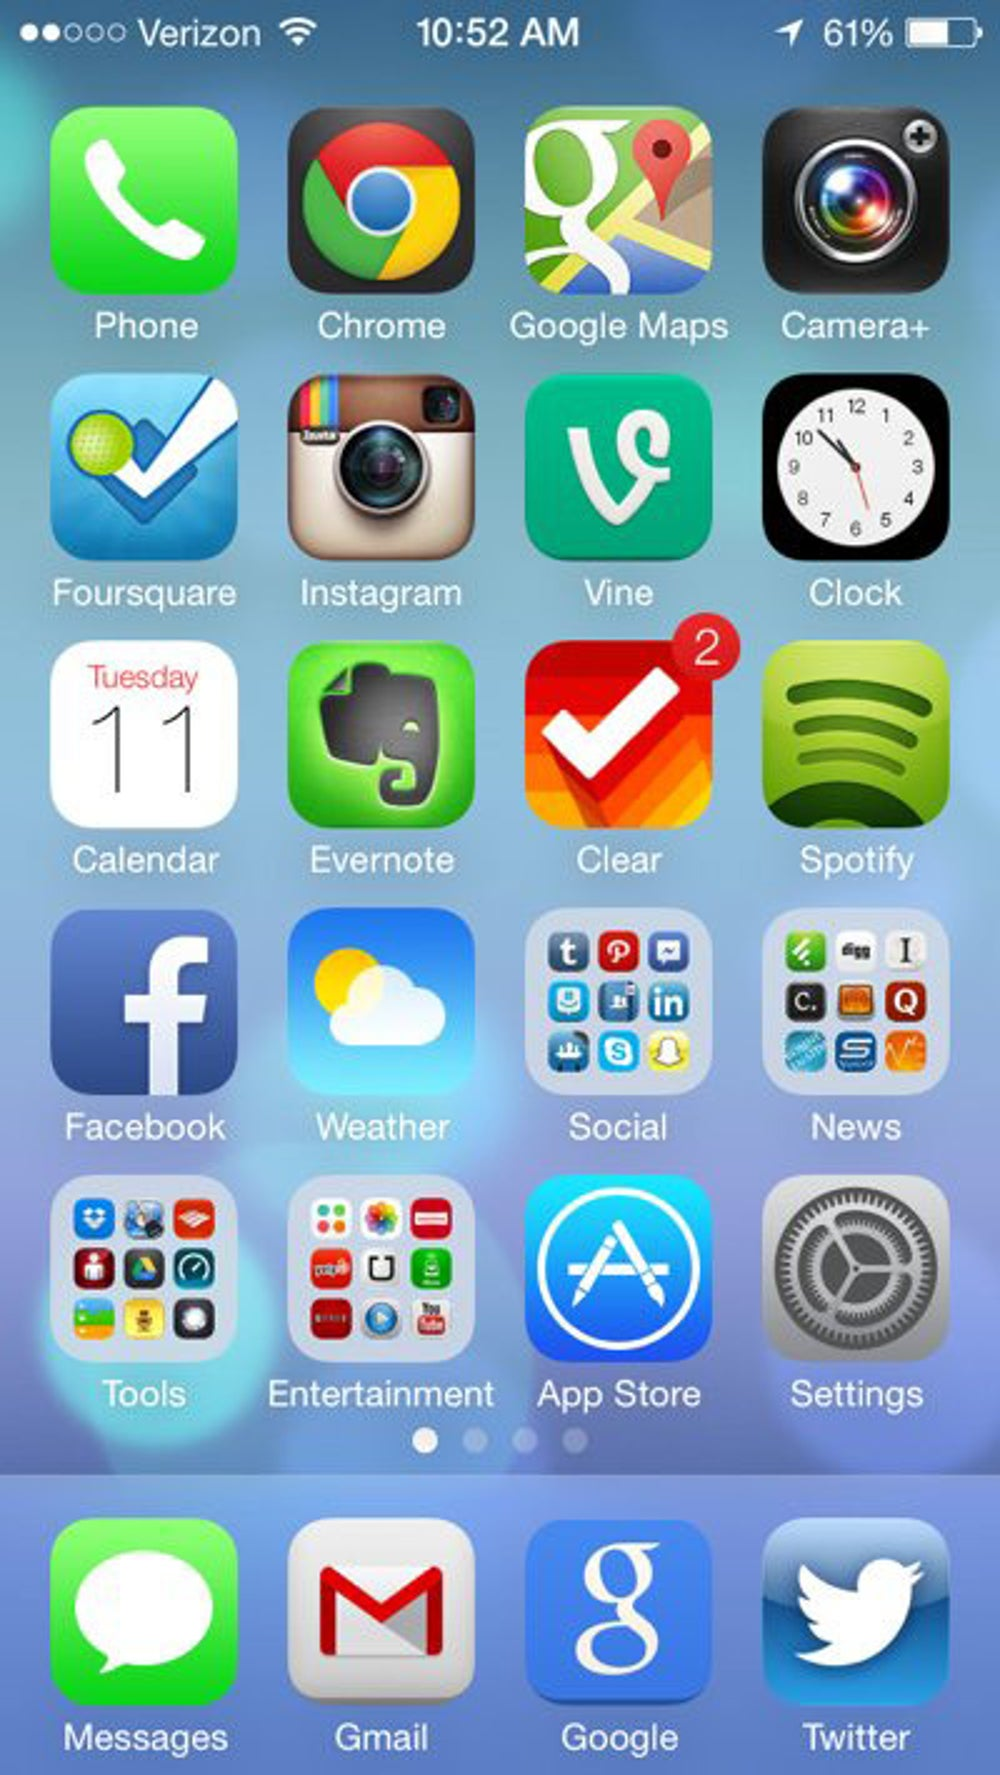 Here's the new home screen. Notice the new icons for Apple's apps like Weather, Phone, Messages, etc.